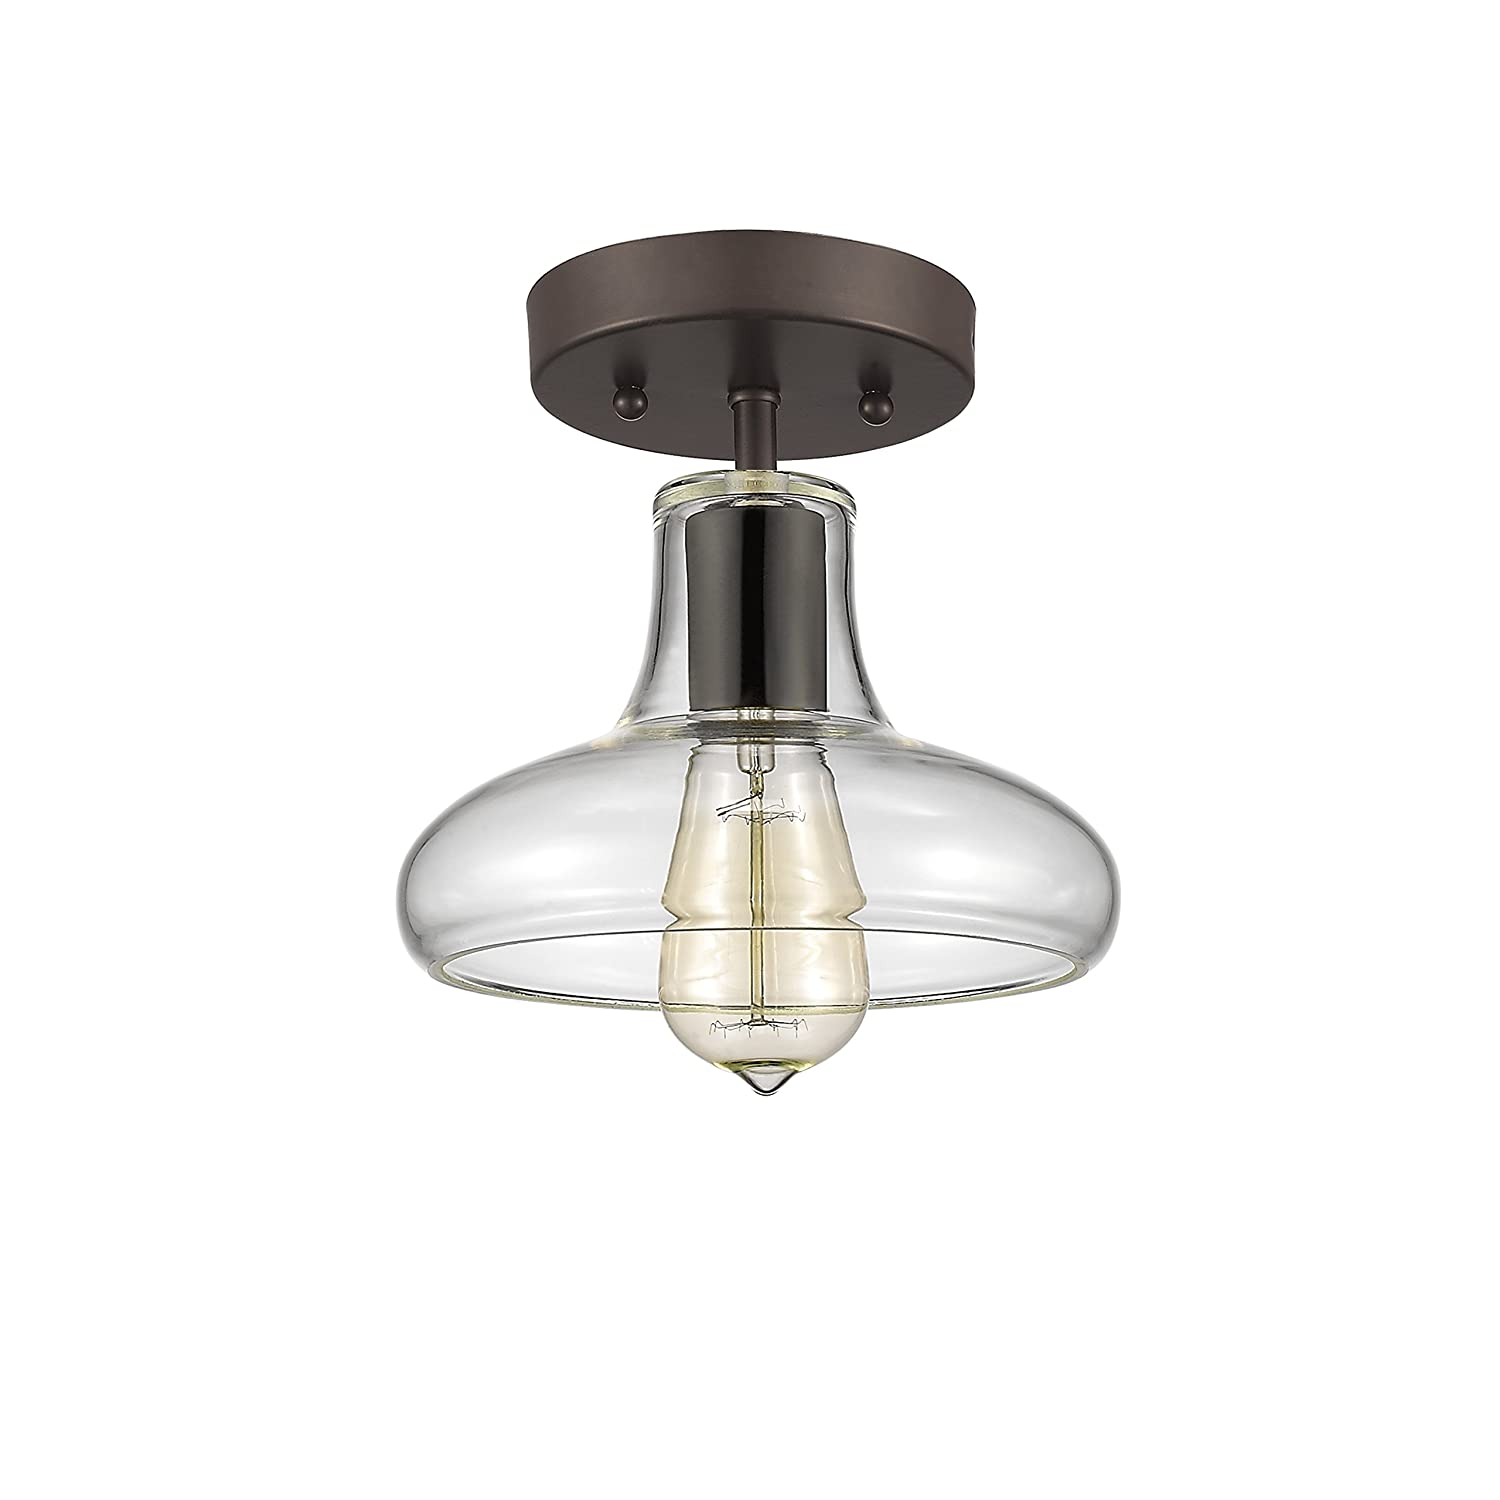 Chloe lighting ch854009cl08 sf1 industrial industrial style 1 chloe lighting ch854009cl08 sf1 industrial industrial style 1 light rubbed bronze semi flush ceiling fixture 8 shade amazon arubaitofo Choice Image